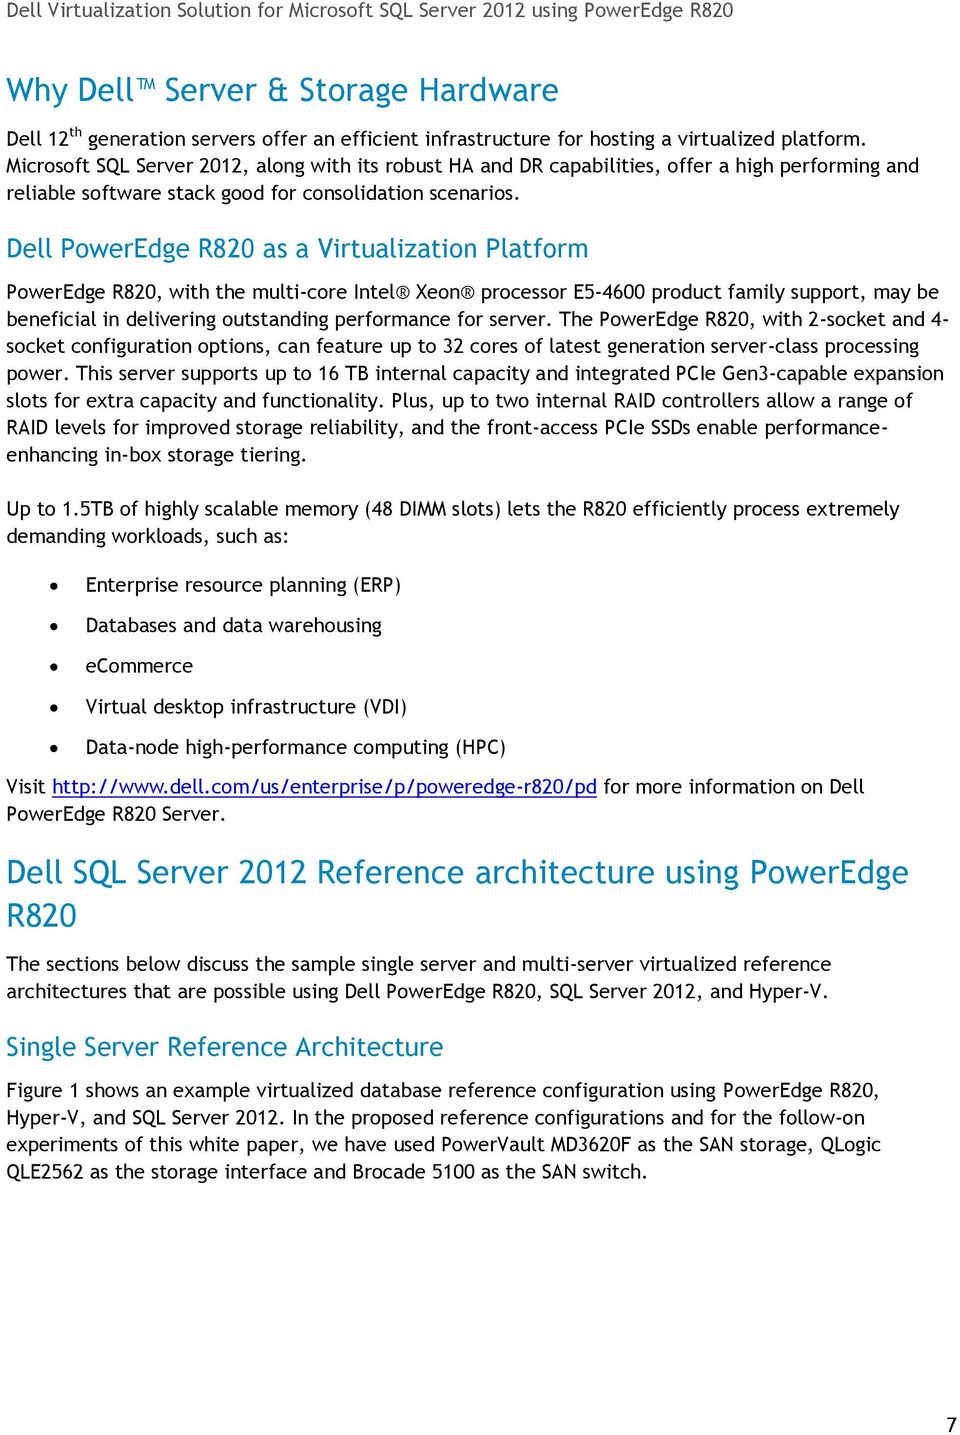 Dell PowerEdge R820 as a Virtualization Platform PowerEdge R820, with the multi-core Intel Xeon processor E5-4600 product family support, may be beneficial in delivering outstanding performance for